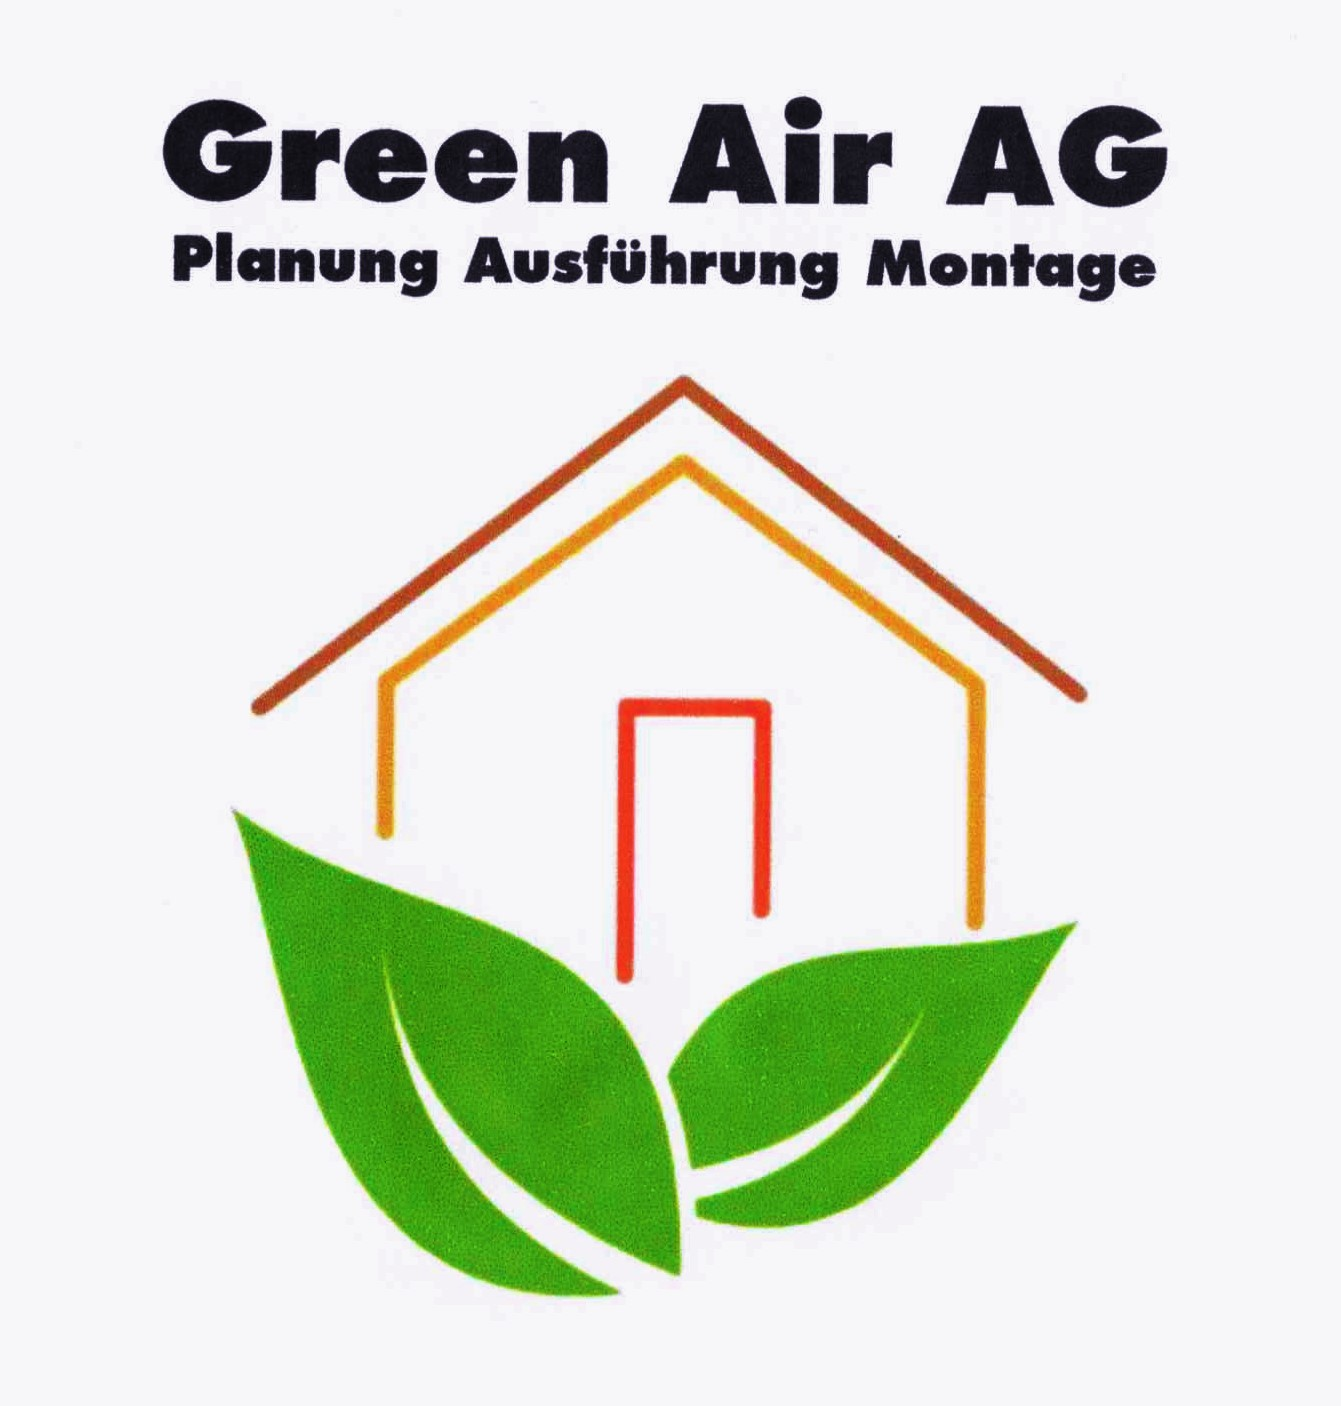 Green Air AG